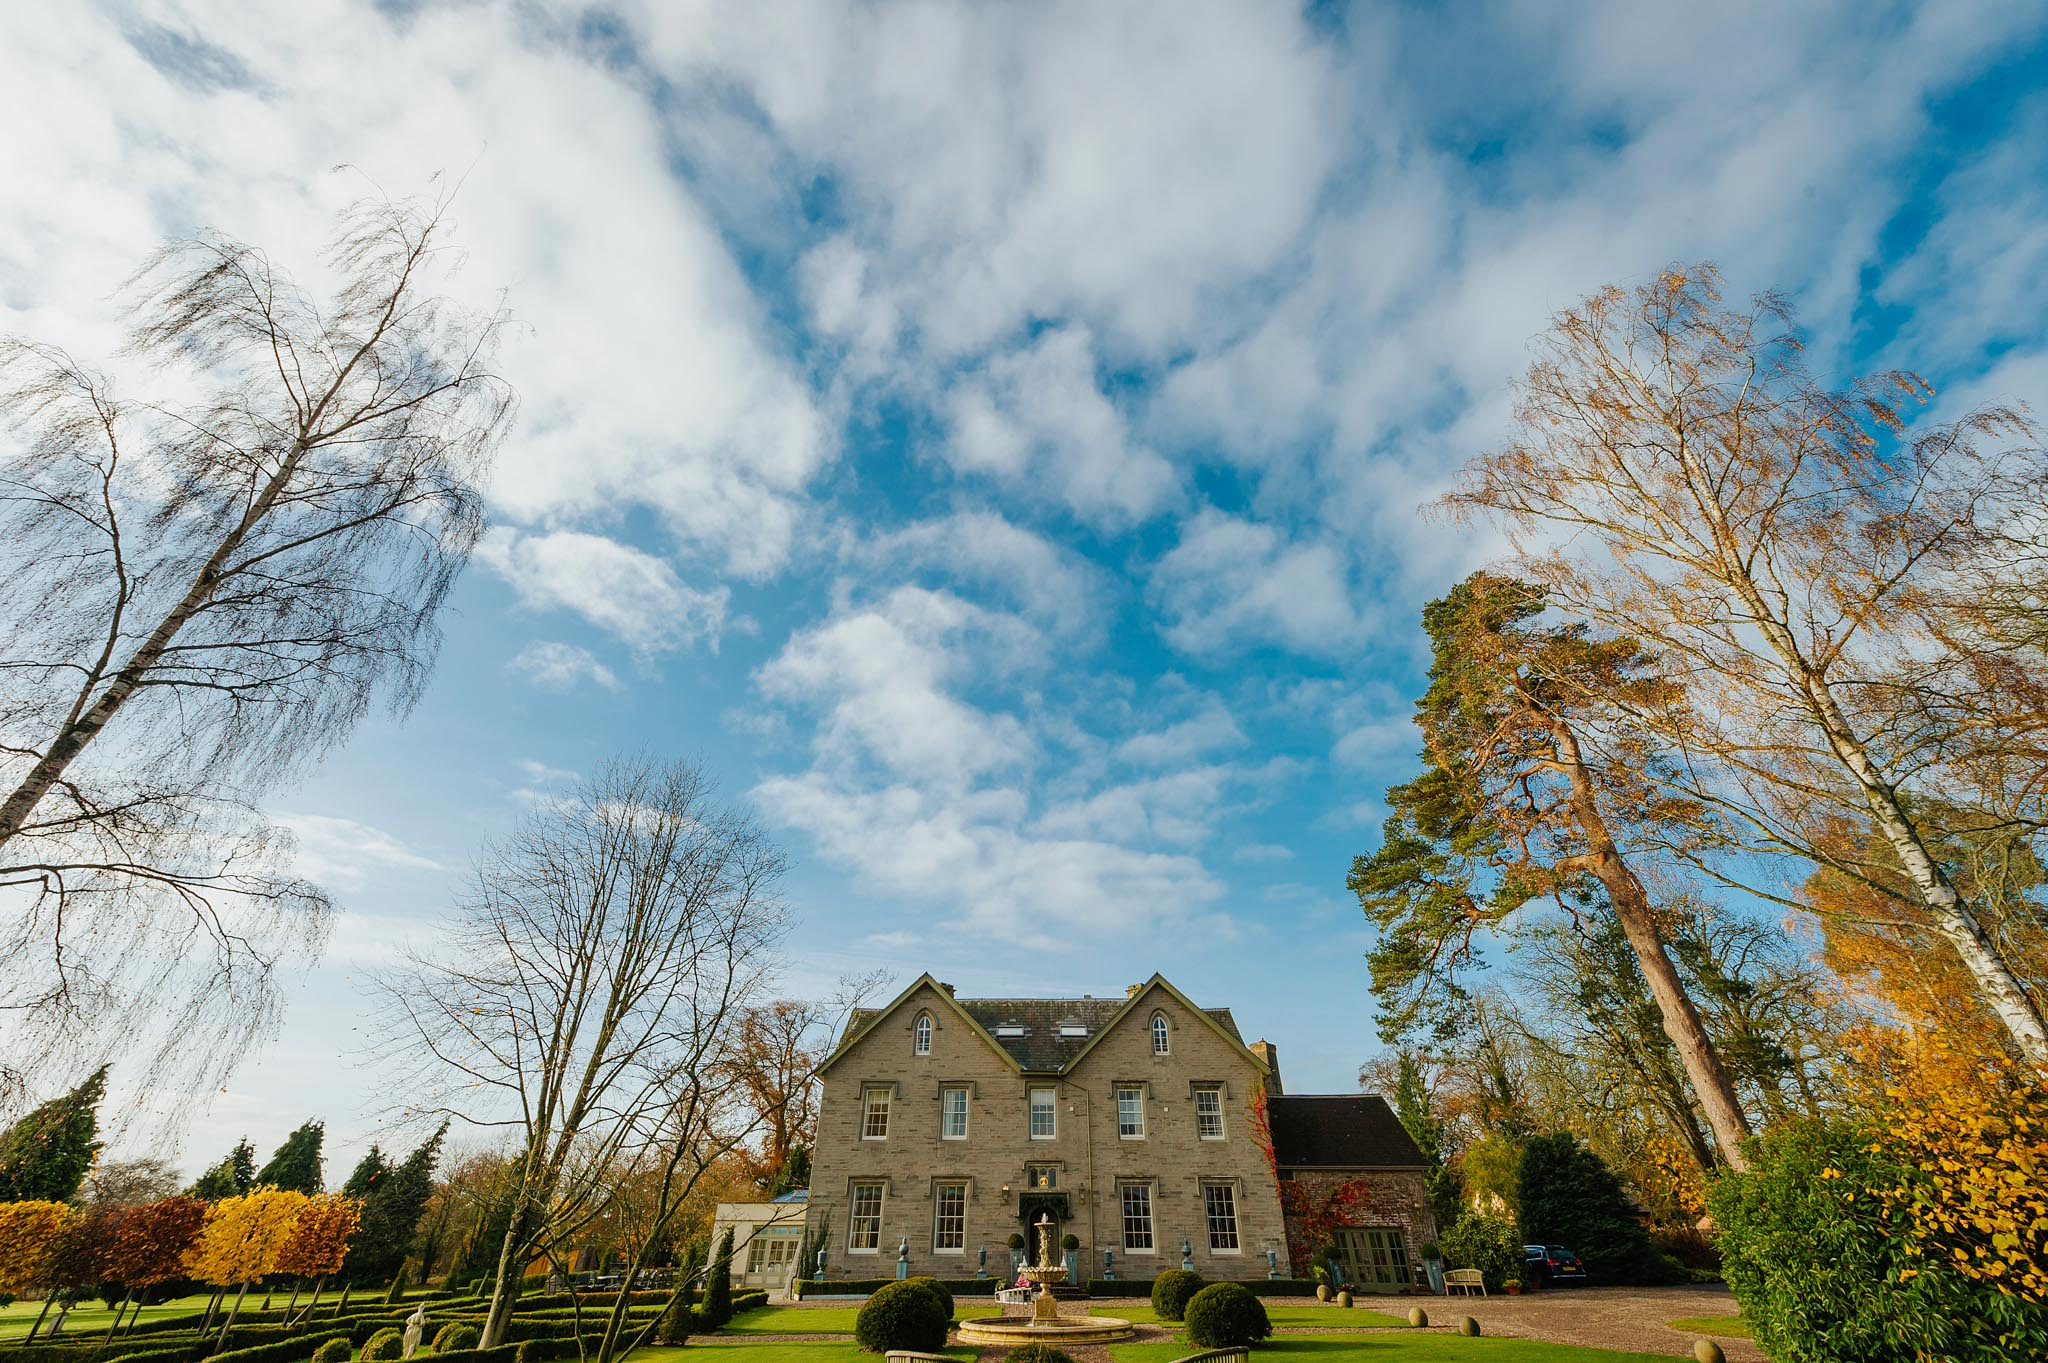 lemore manor wedding herefordshire 14 - Lemore Manor wedding, Herefordshire - West Midlands | Sadie + Ken